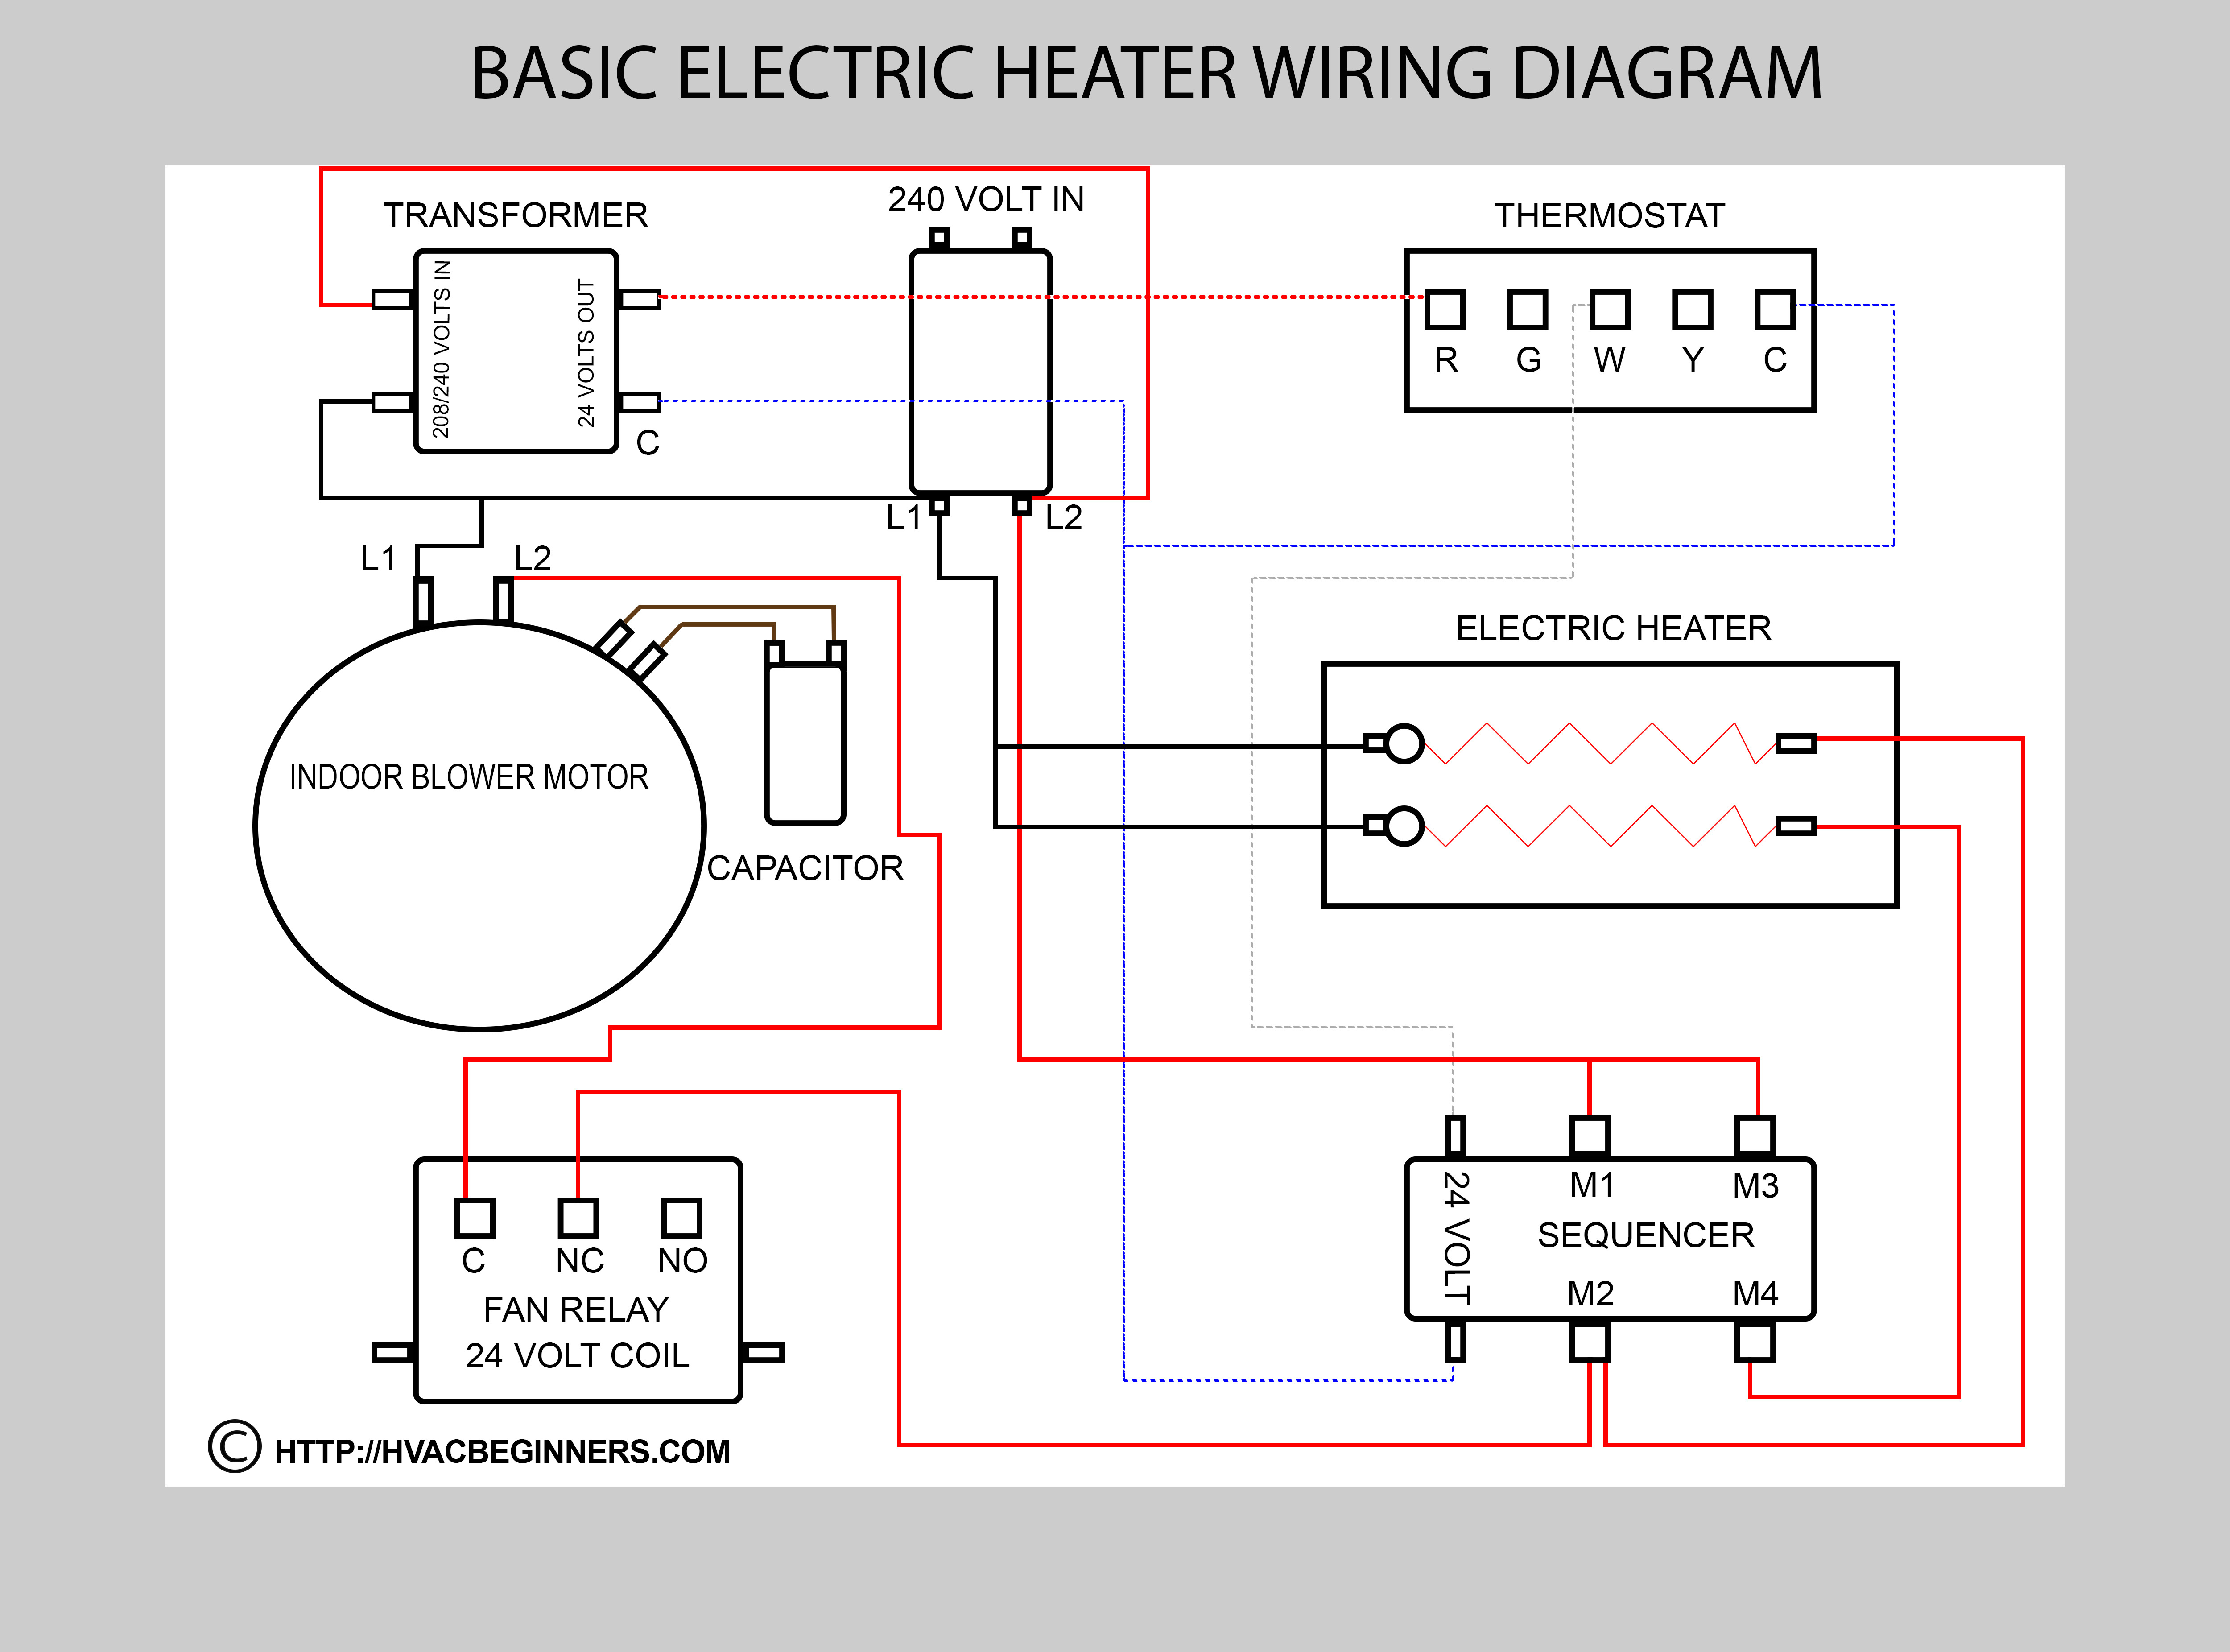 Hvac Training On Electric Heaters - Hvac Training For Beginners - Electric Furnace Wiring Diagram Sequencer